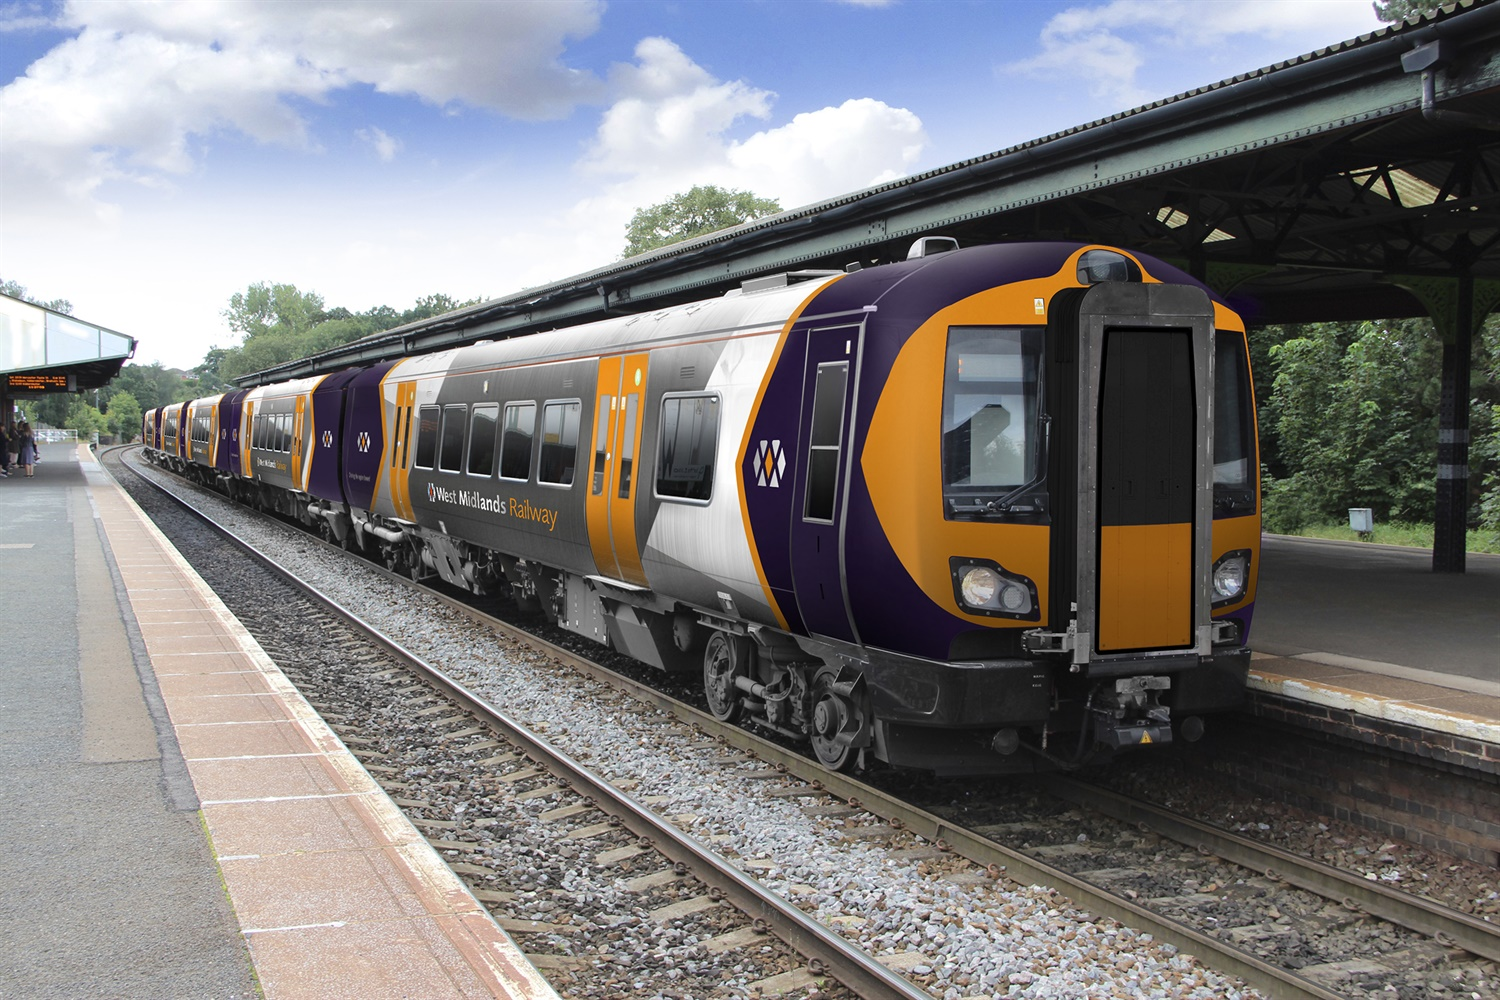 New £1bn West Midlands franchise leaves passengers standing